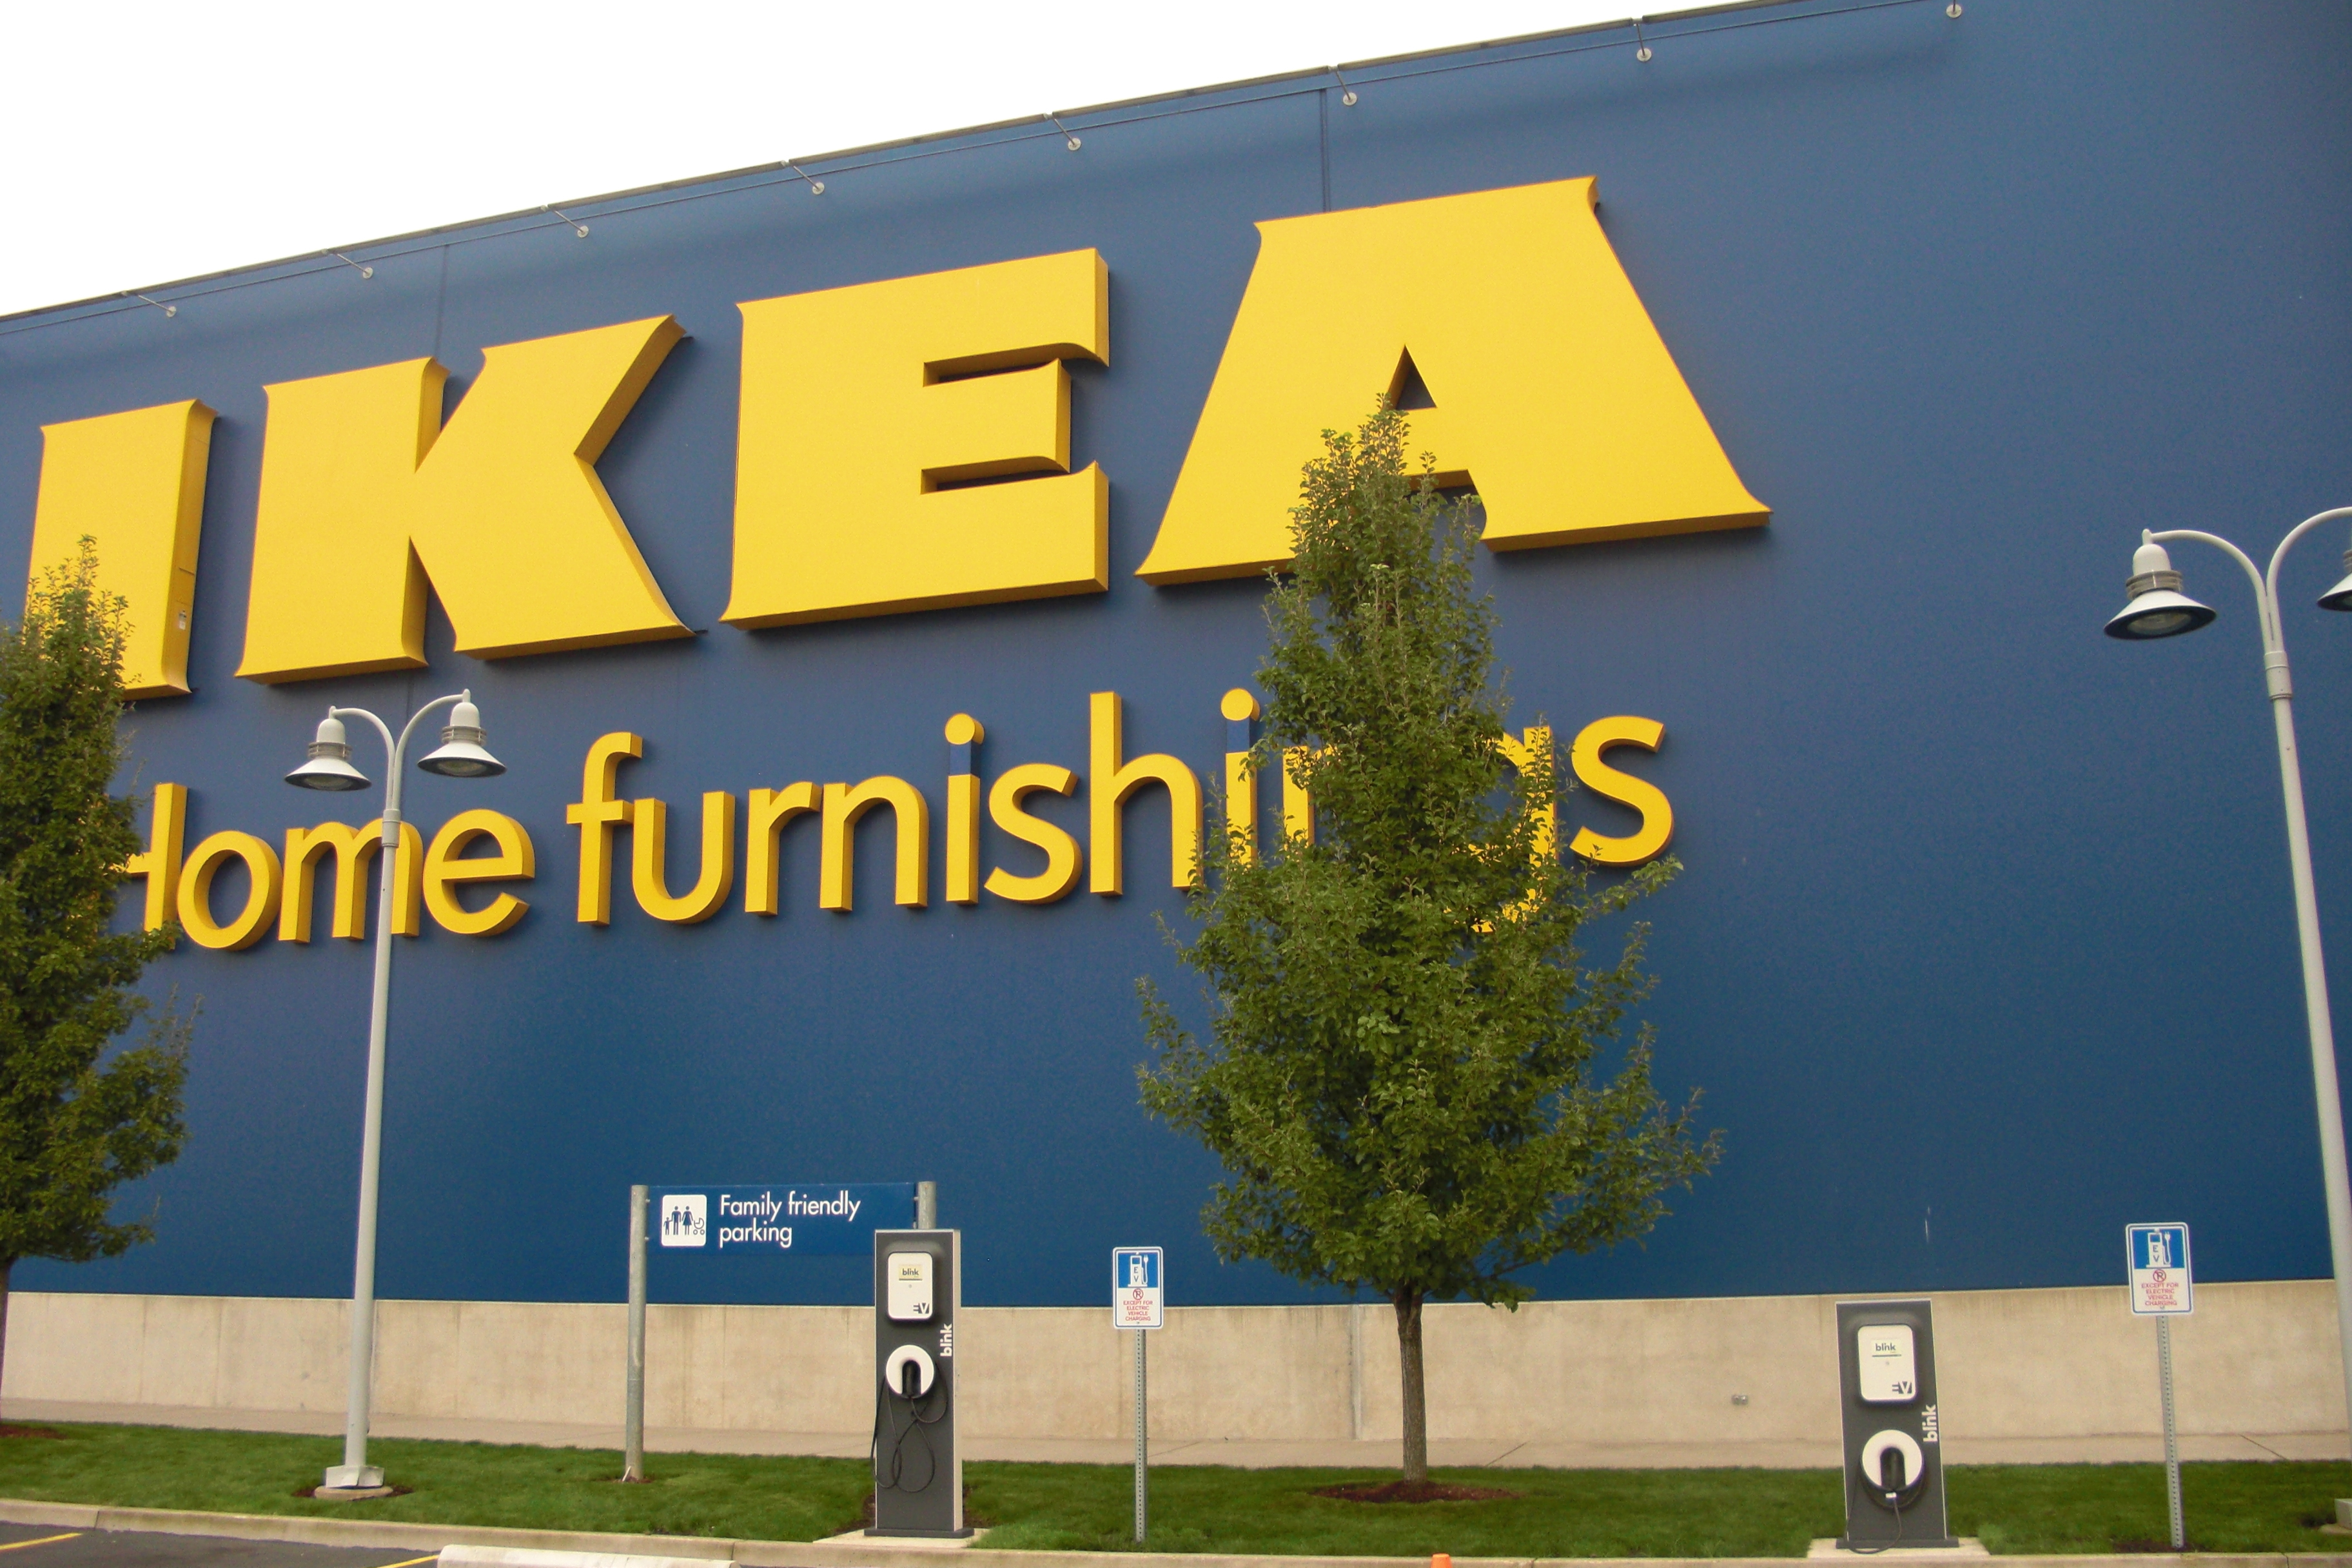 IKEA to install 3 electric vehicle charging stations at future Columbus store, opening Summer 2017. (Photo: Business Wire)